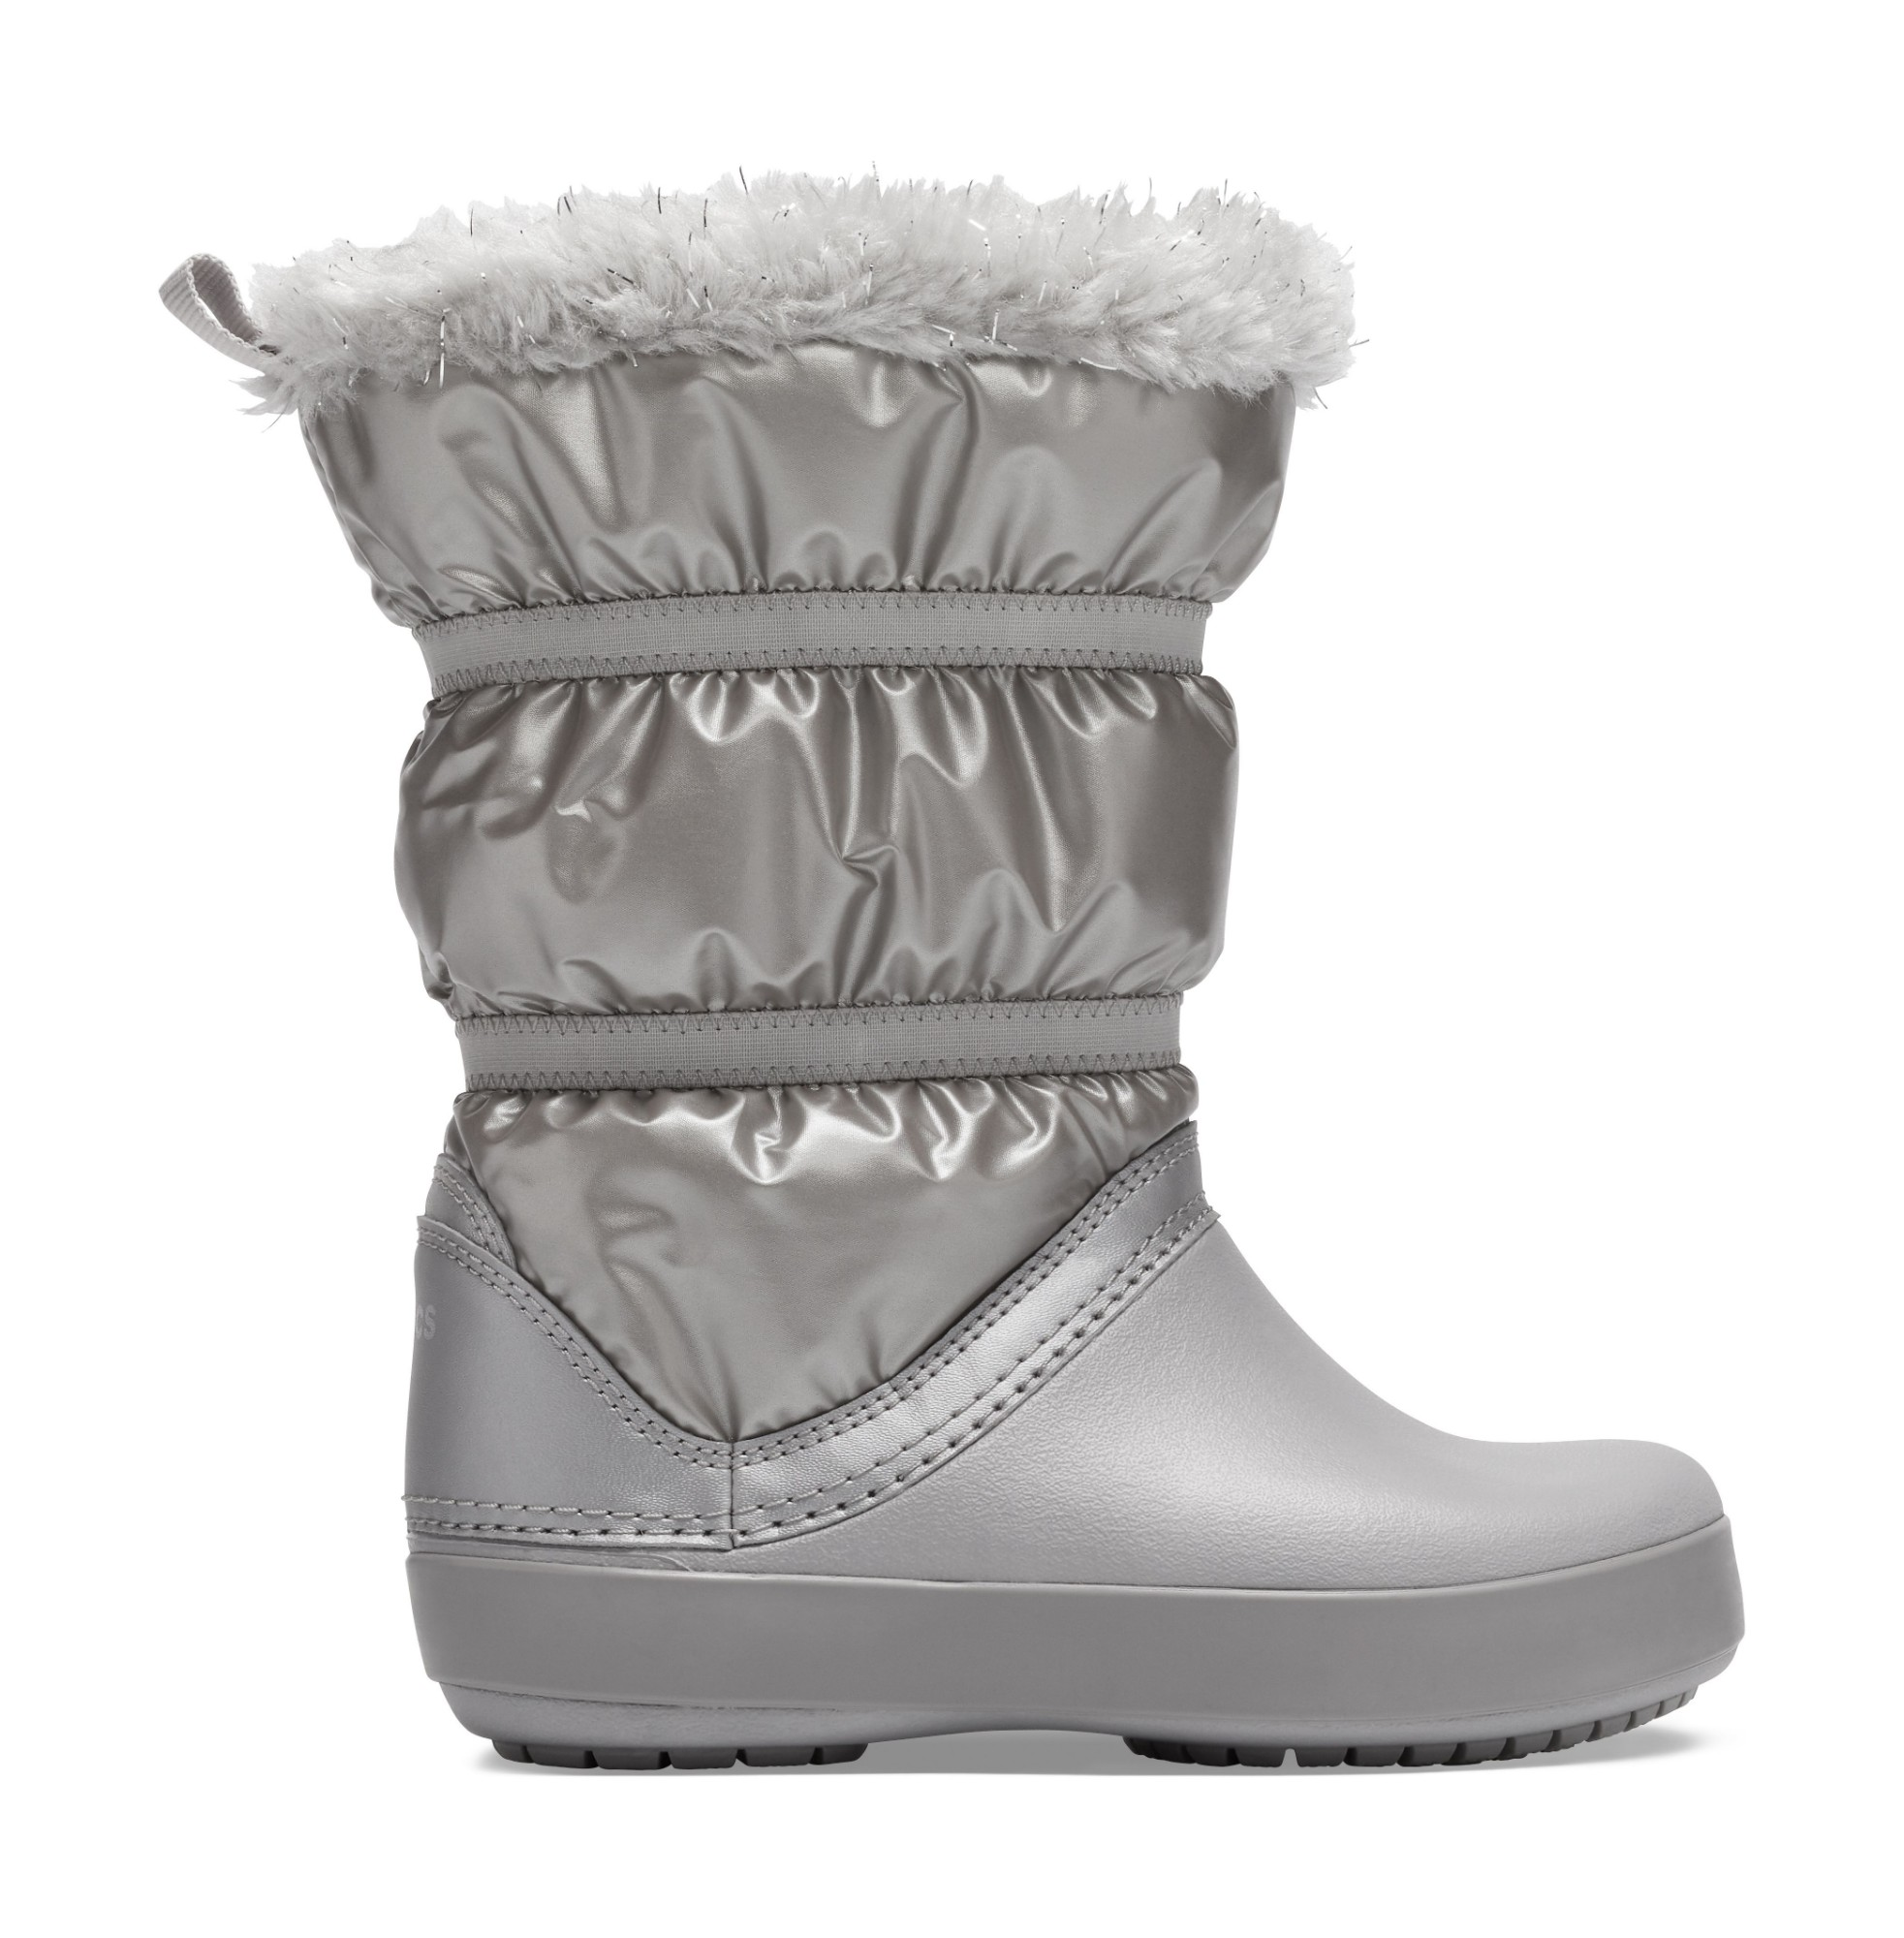 Crocs™ Crocband LodgePoint Metallic Boot Girl's Silver Metallic 25